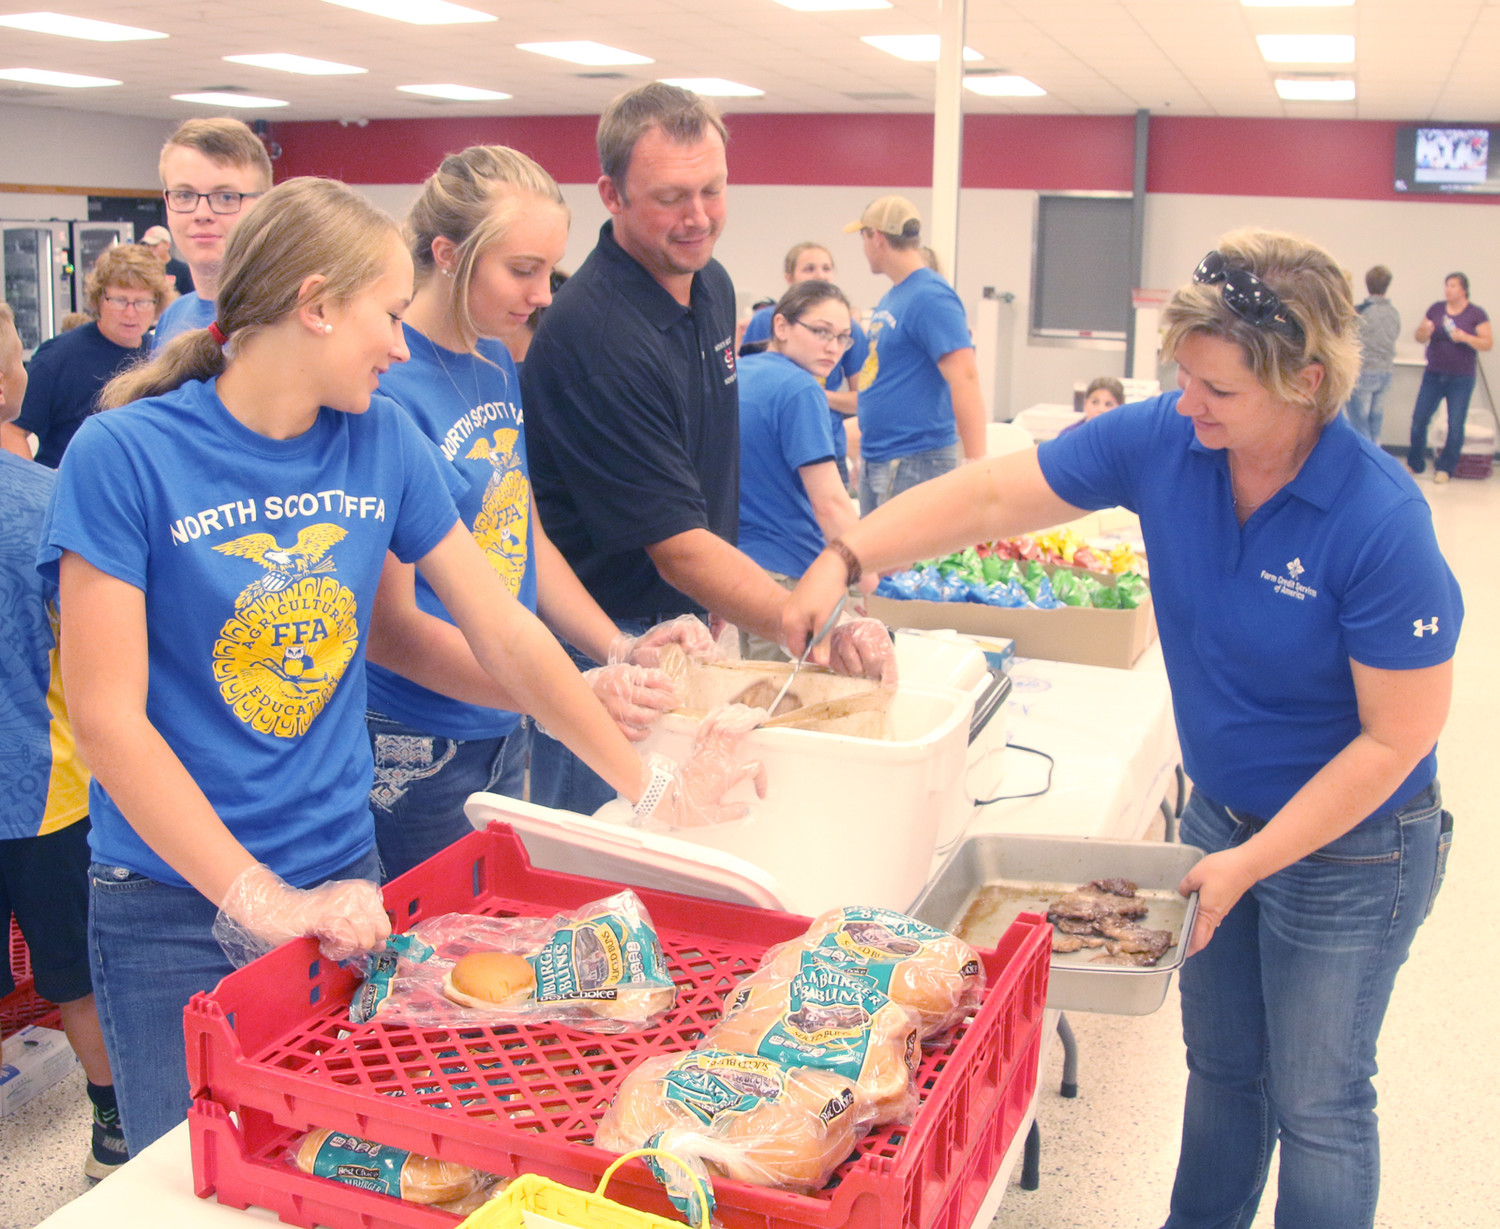 North Scott School Board member Mark Pratt joins FFA volunteers serving lunch at the high school cafeteria for the WHO Tractor Ride, Monday, June 25, 2018.